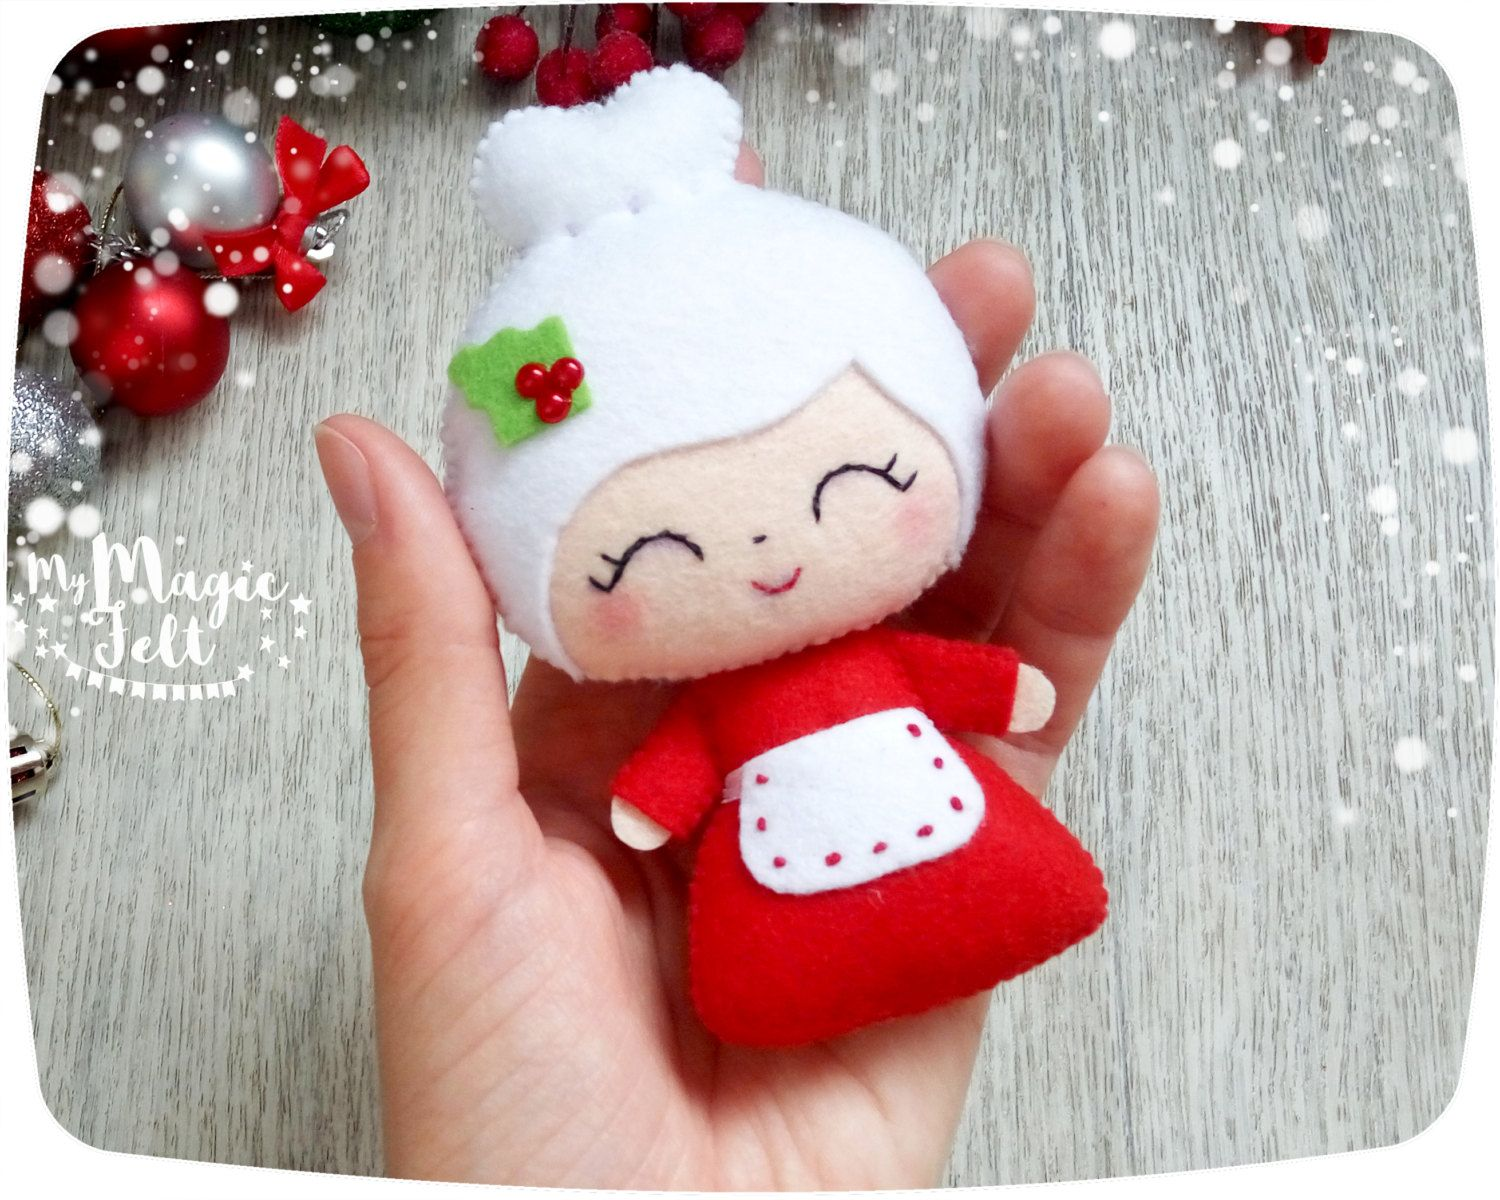 Christmas Ornaments Santa And Mrs Claus Ornament Felt Santa Ornament For Christmas  Tree Decorations Christmas Accents